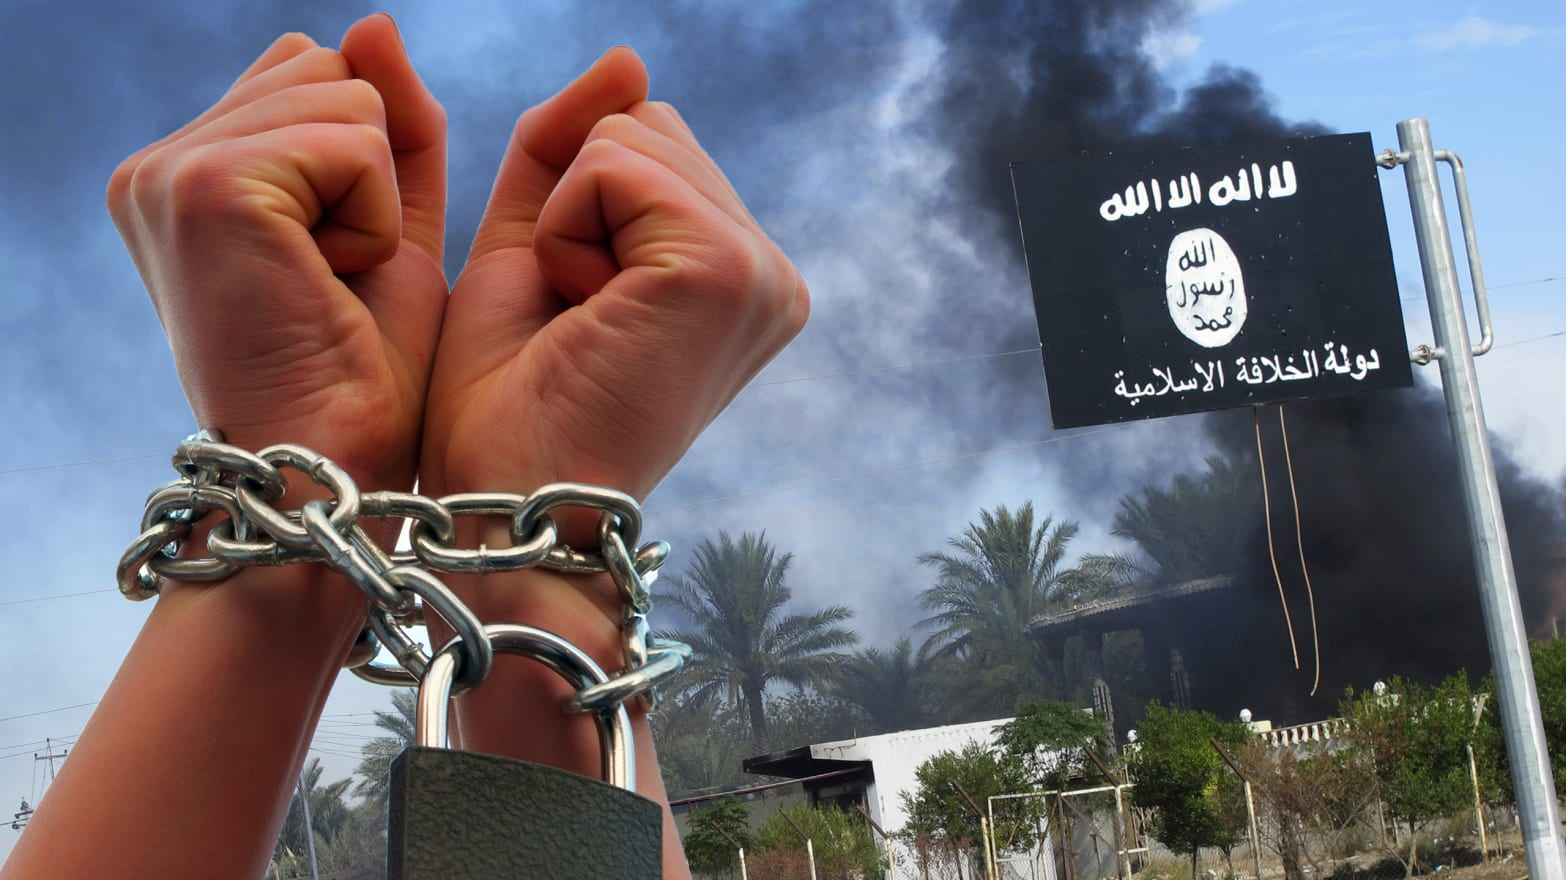 ISIS, Boko Haram, and the Growing Role of Human Trafficking in 21st